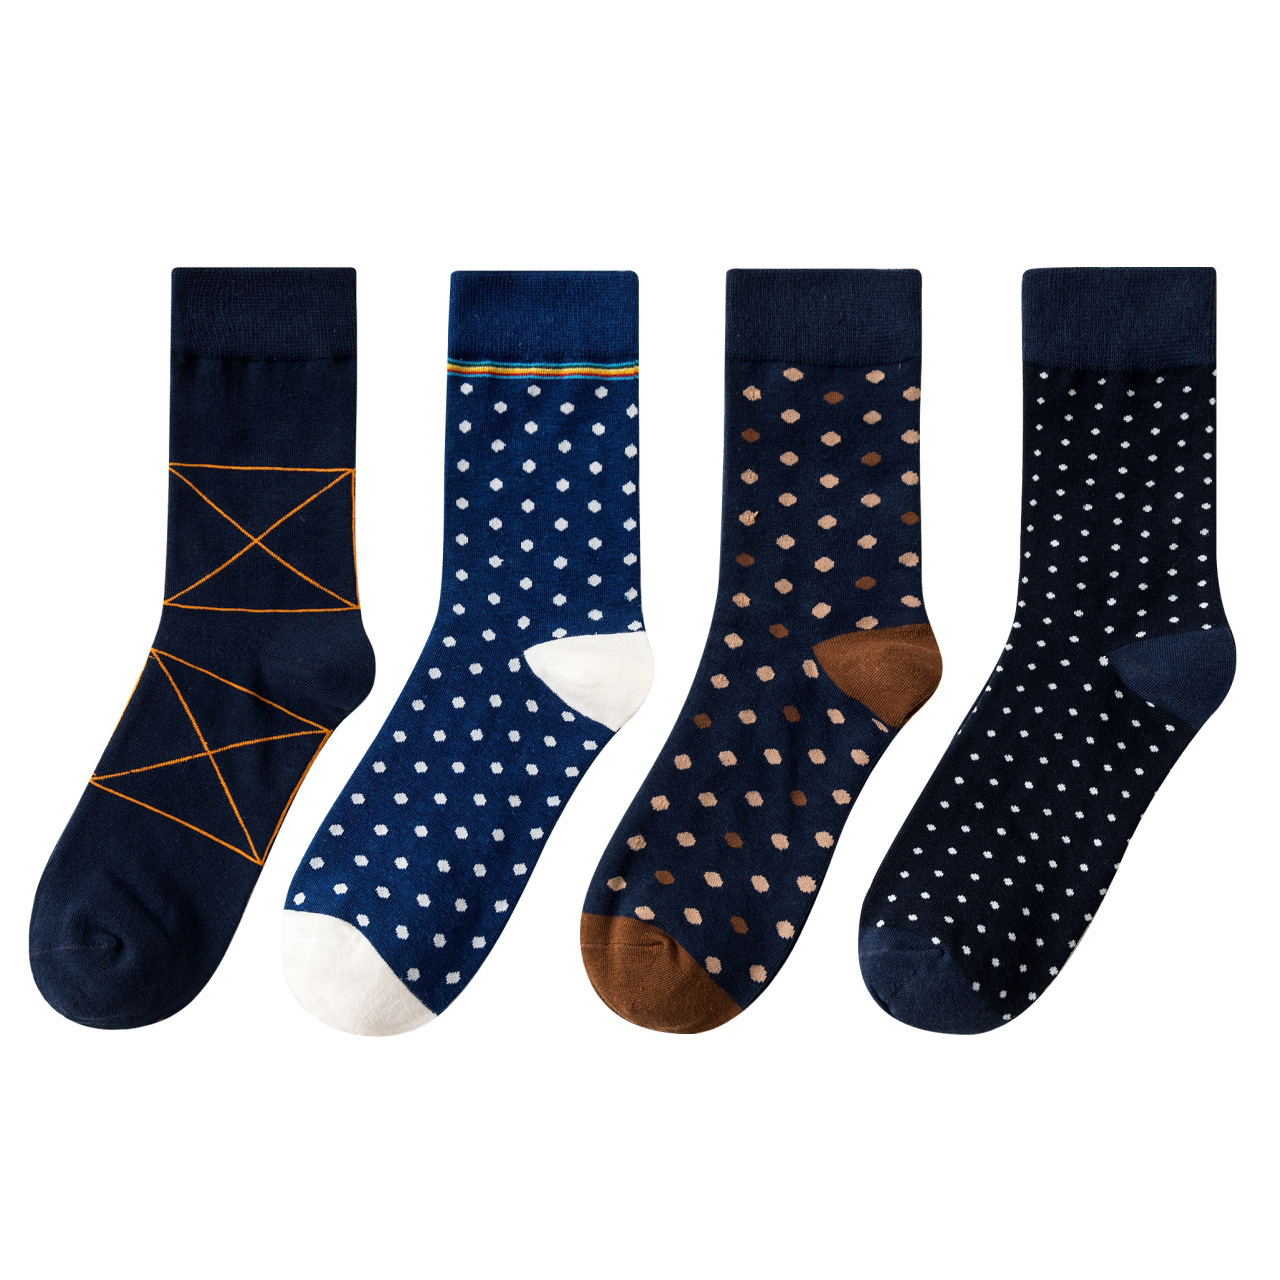 Man   Socks   4 Pairs 2018 New Autumn Casual   Socks   Man Long Men's Fashion Dots Warm Cotton Color   Socks   Funny High Quality